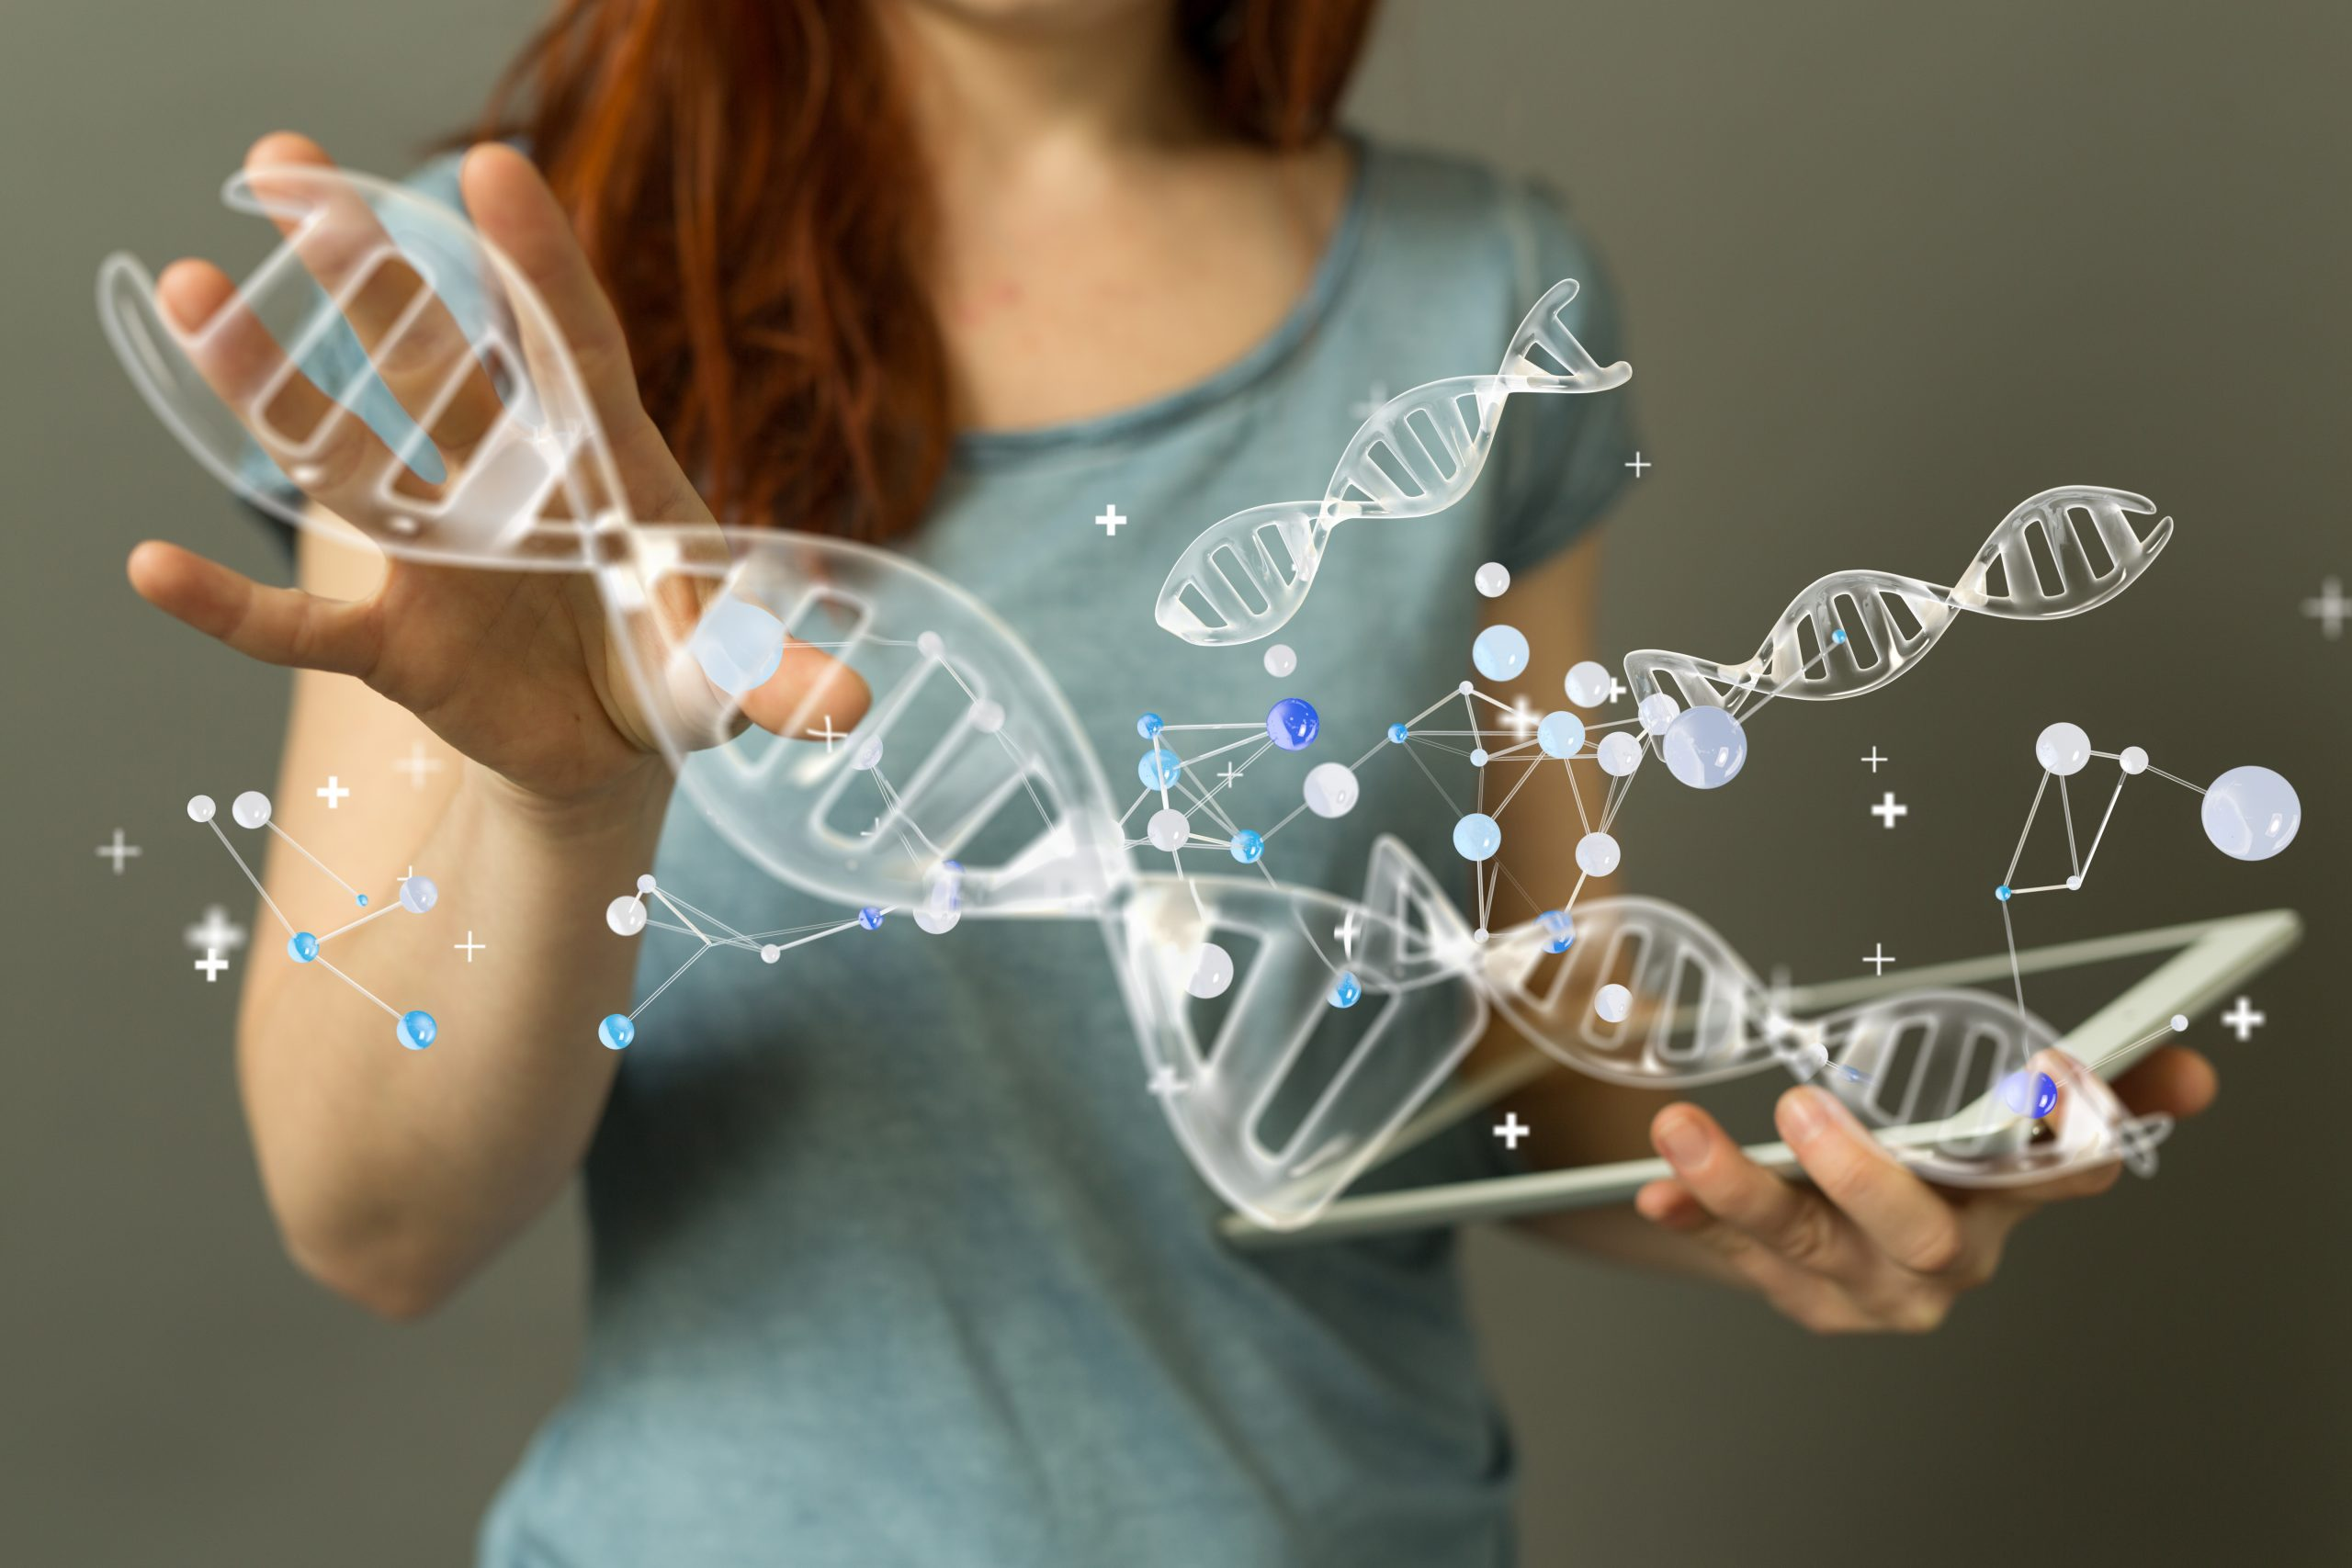 A picture of a female and a graphic of genes